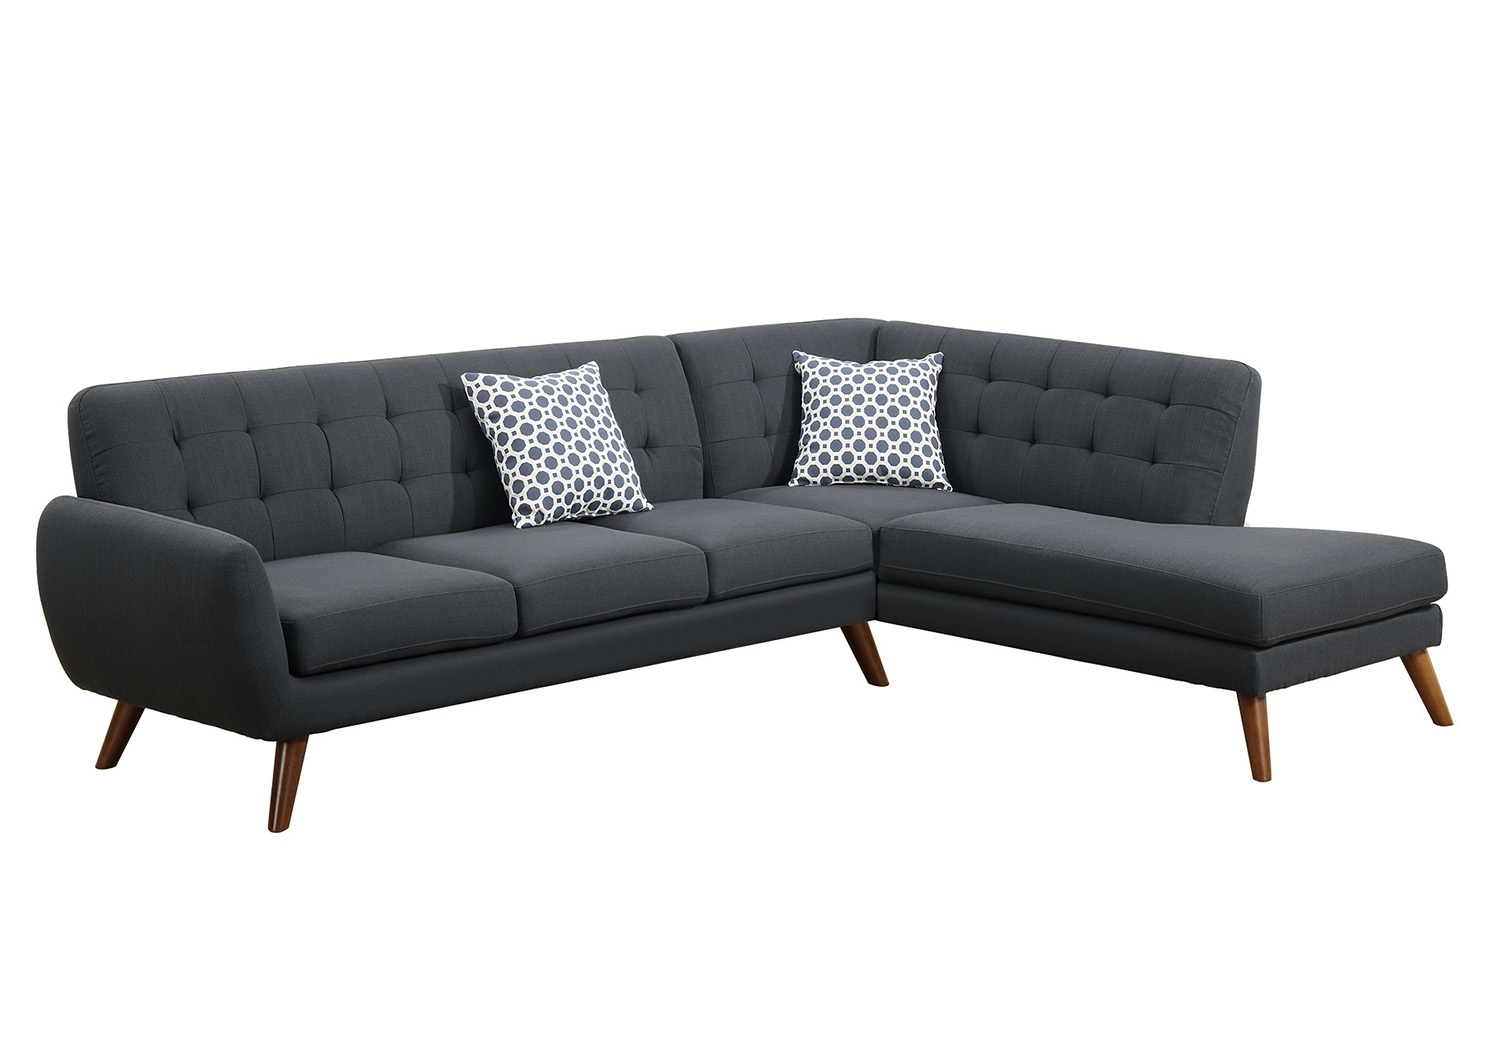 10 Ideas Of Sectional Sofas Under 1500